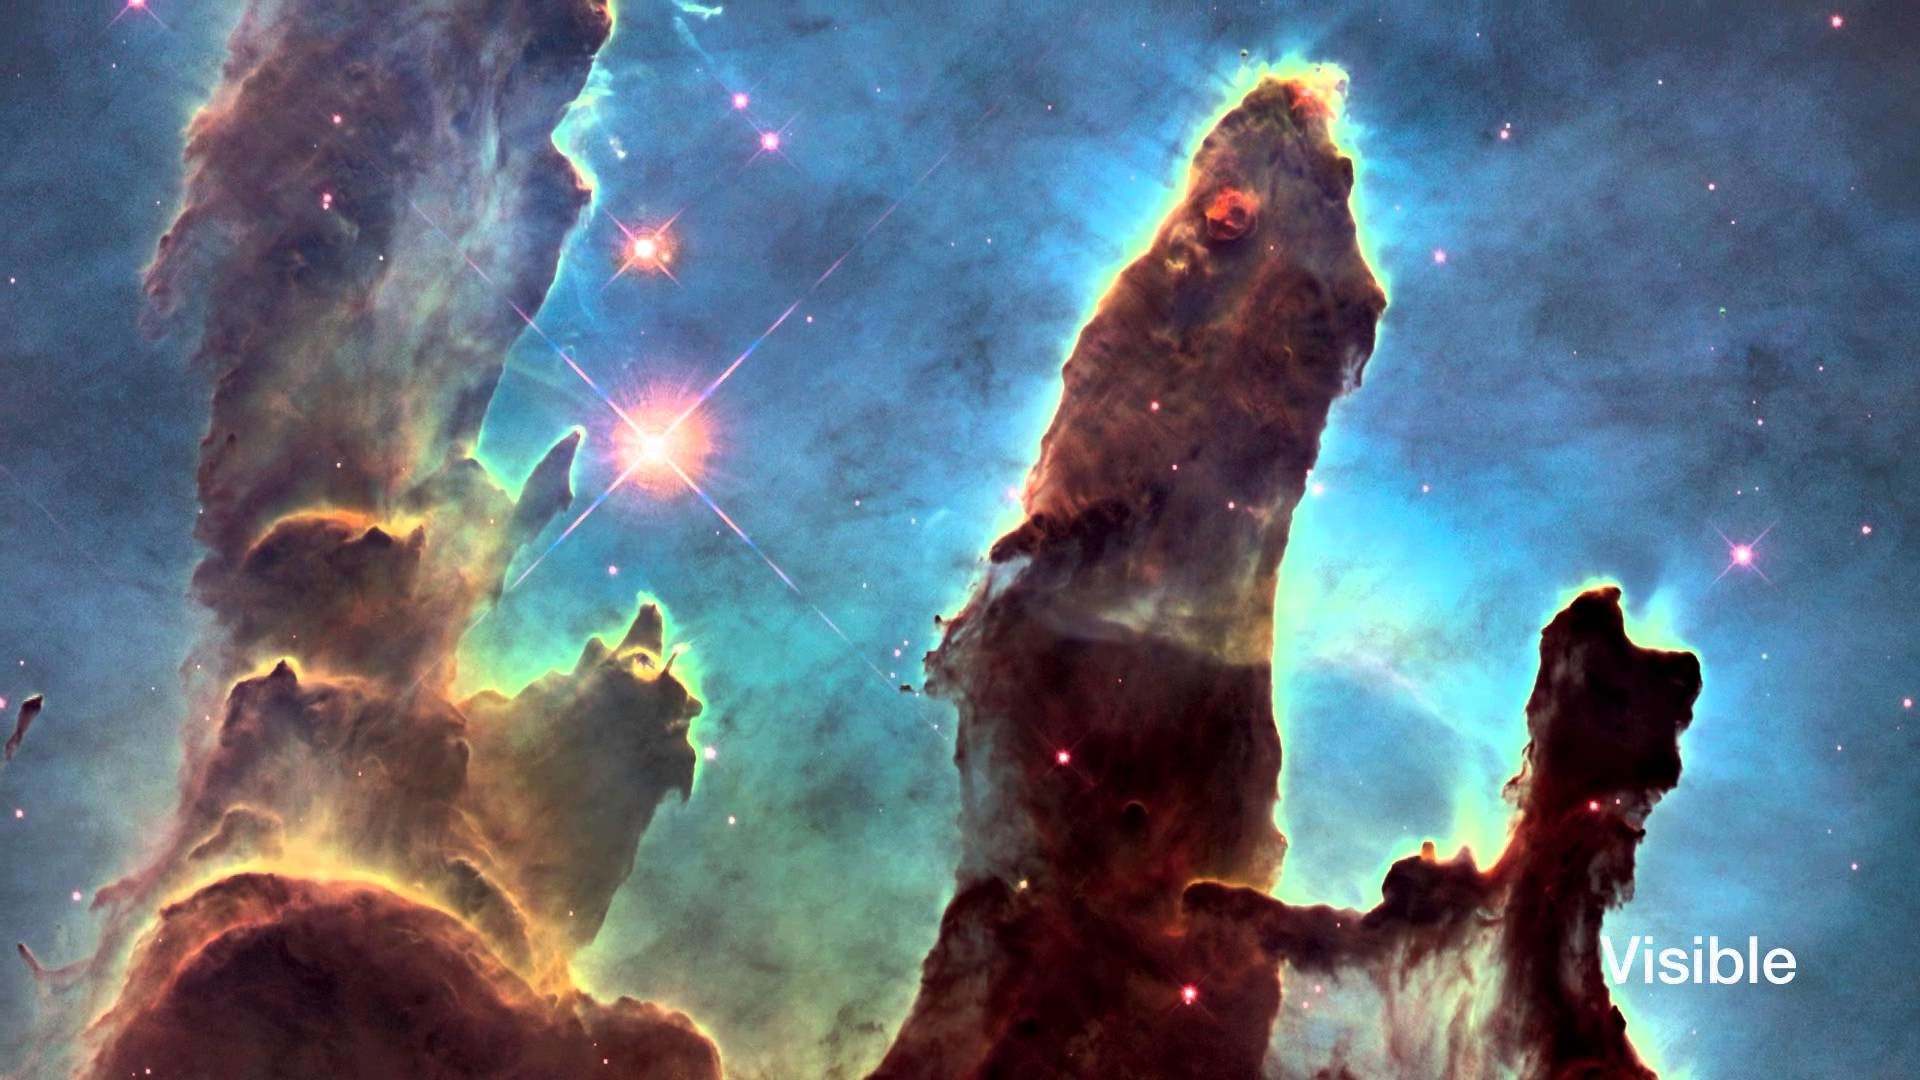 Hubblecast 82: New view of the Pillars of Creation